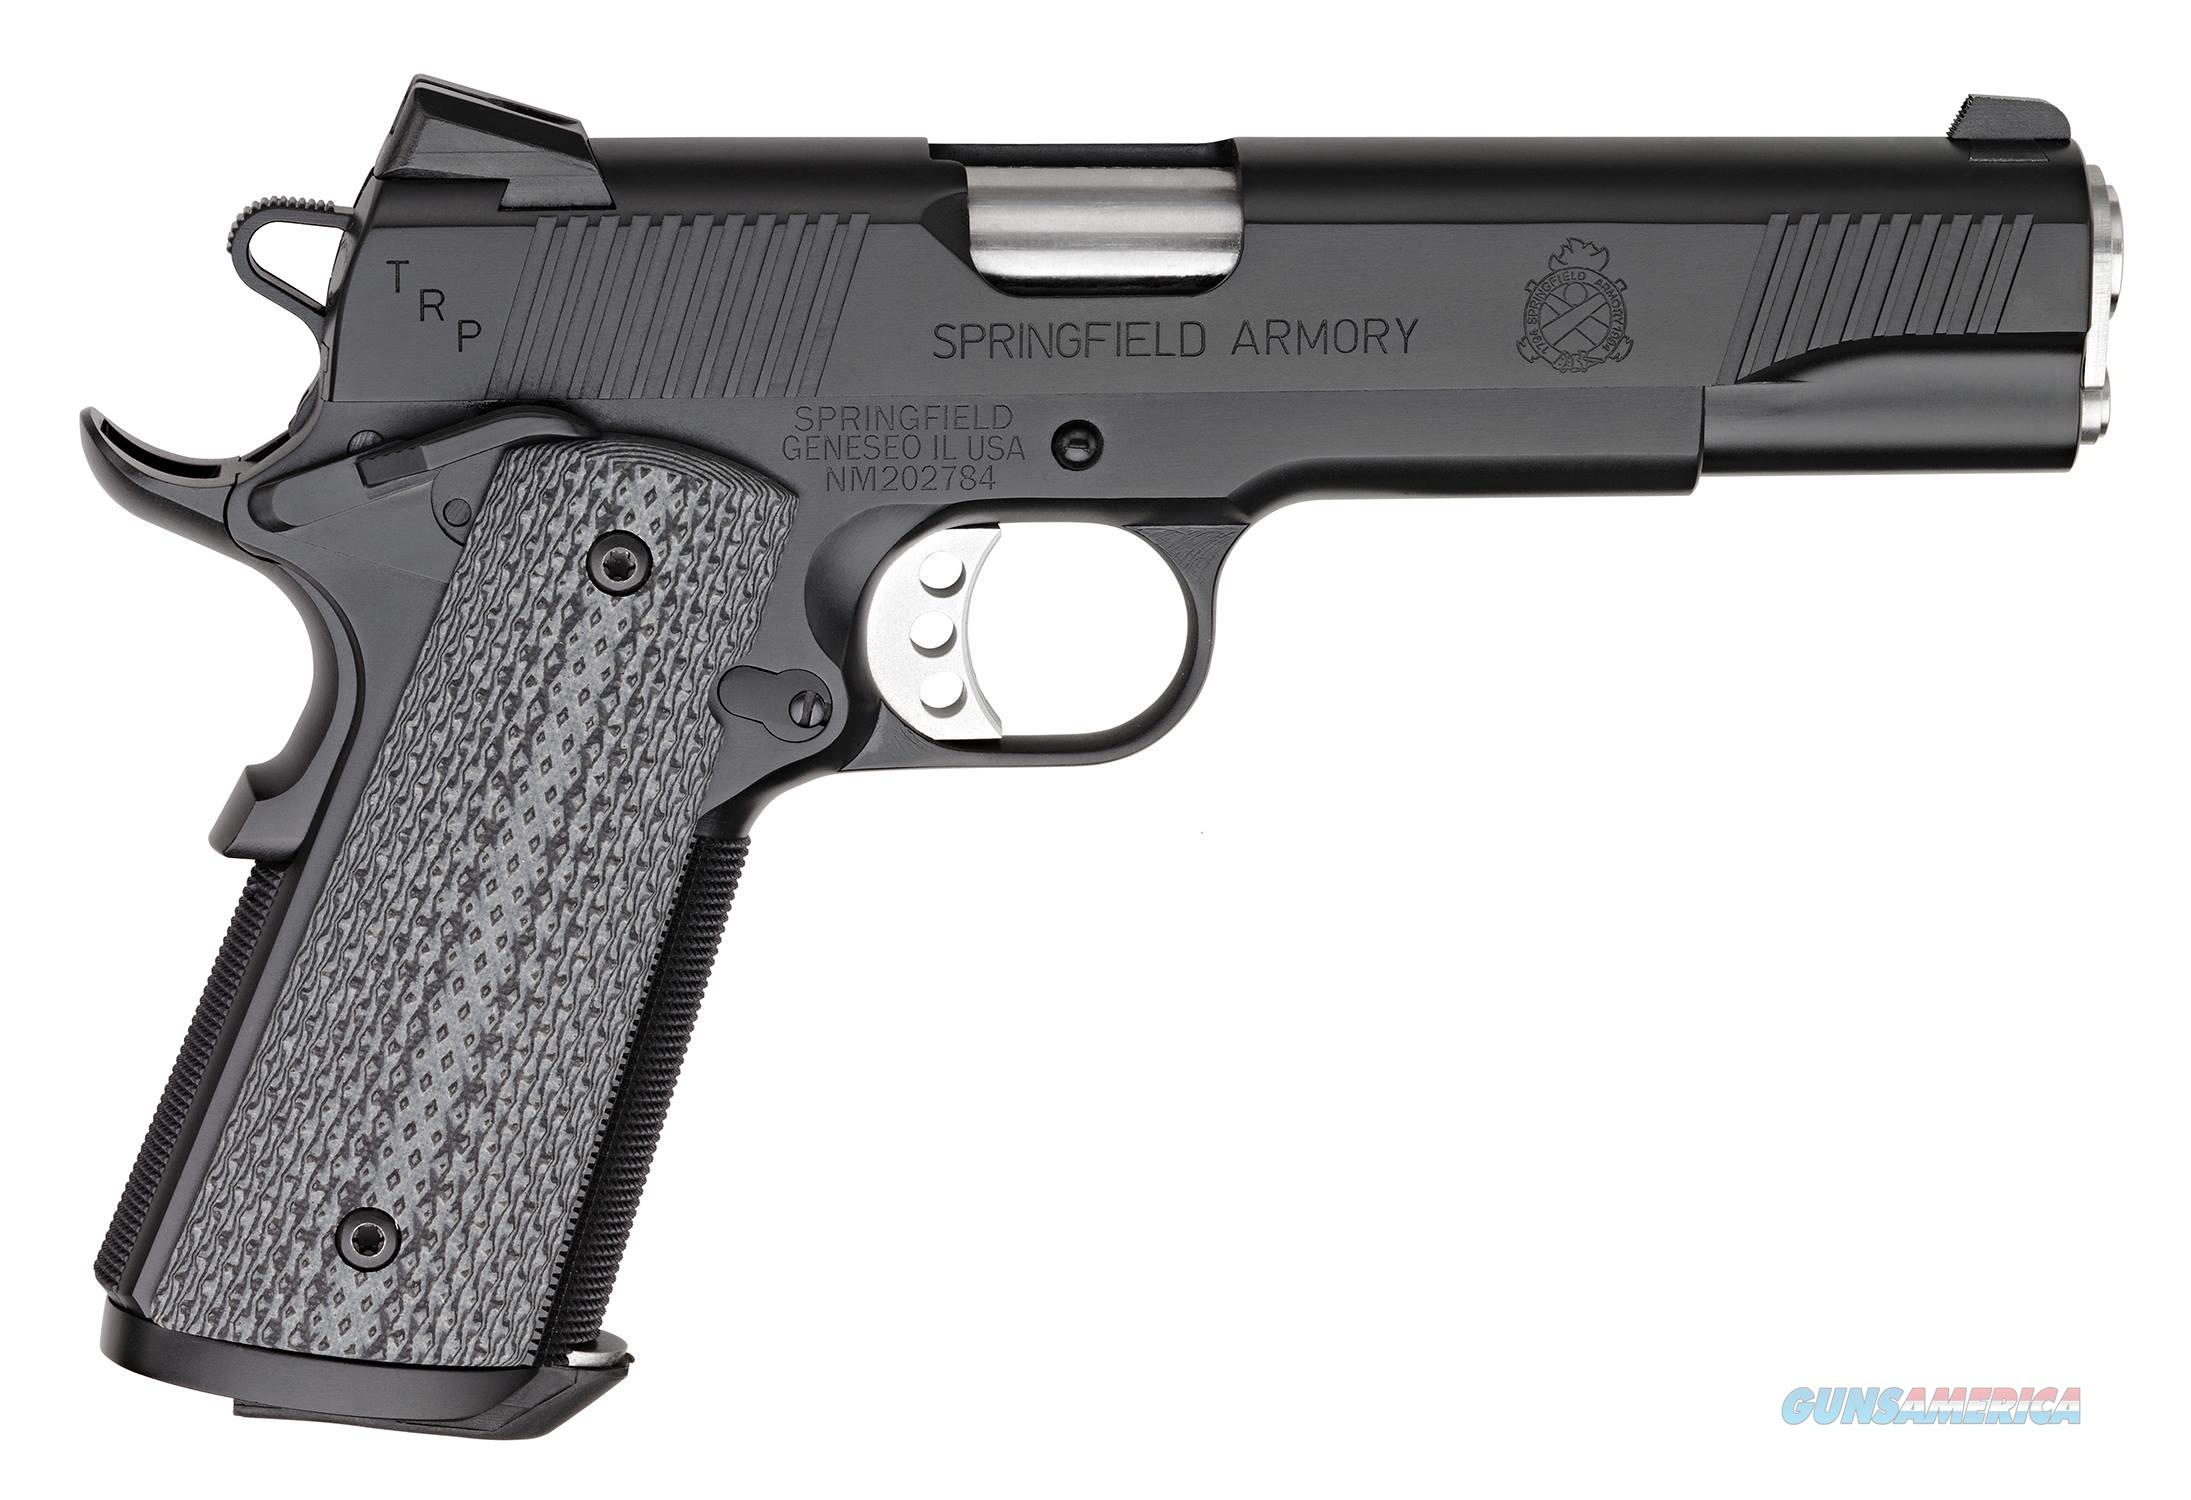 "Springfield Armory PC9108L18 1911 TRP  45 Automatic Colt Pistol (ACP) Single 5"" 7+1 Black/Gray G10  Guns > Pistols > S Misc Pistols"